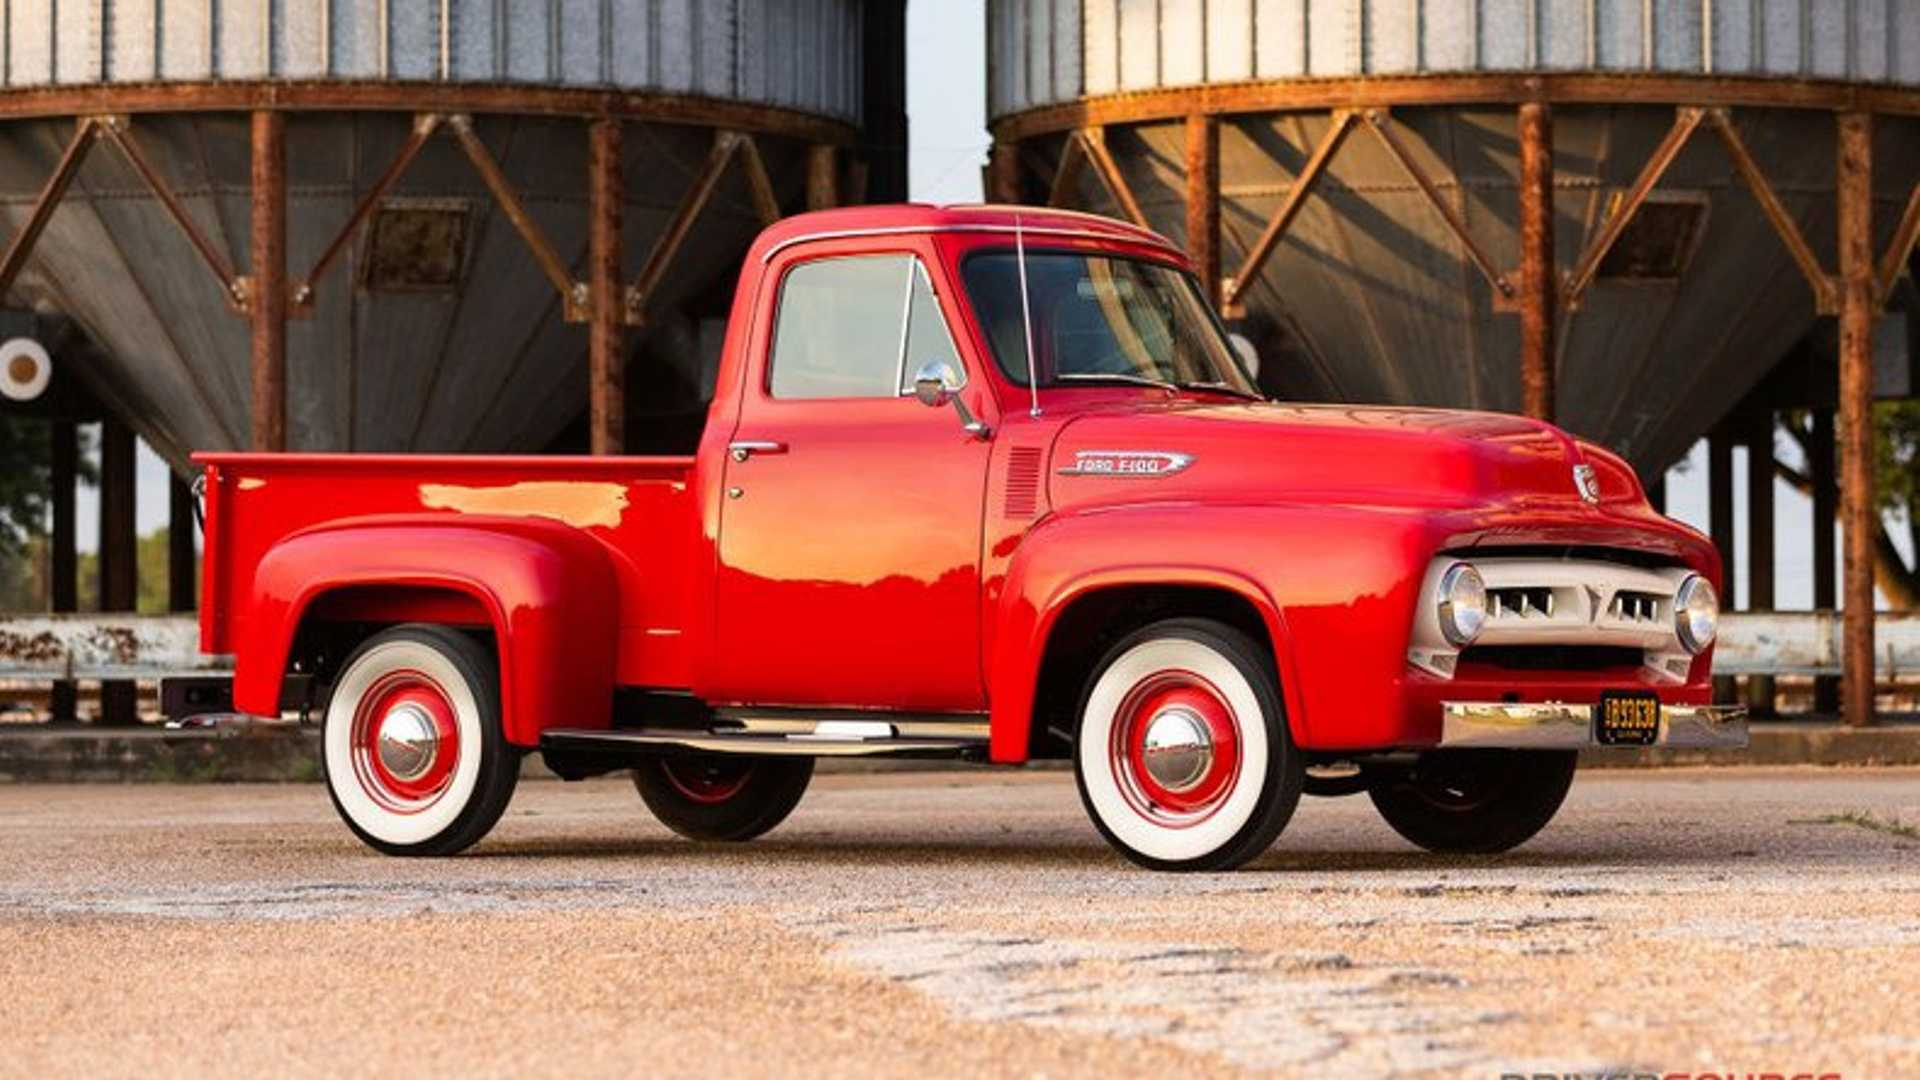 Someone is currently selling a 66-year-old, thoroughly restored Ford F100 pickup truck in Houston, Texas. Coming with a $59,500 price tag, the vehicle seems like a steal.